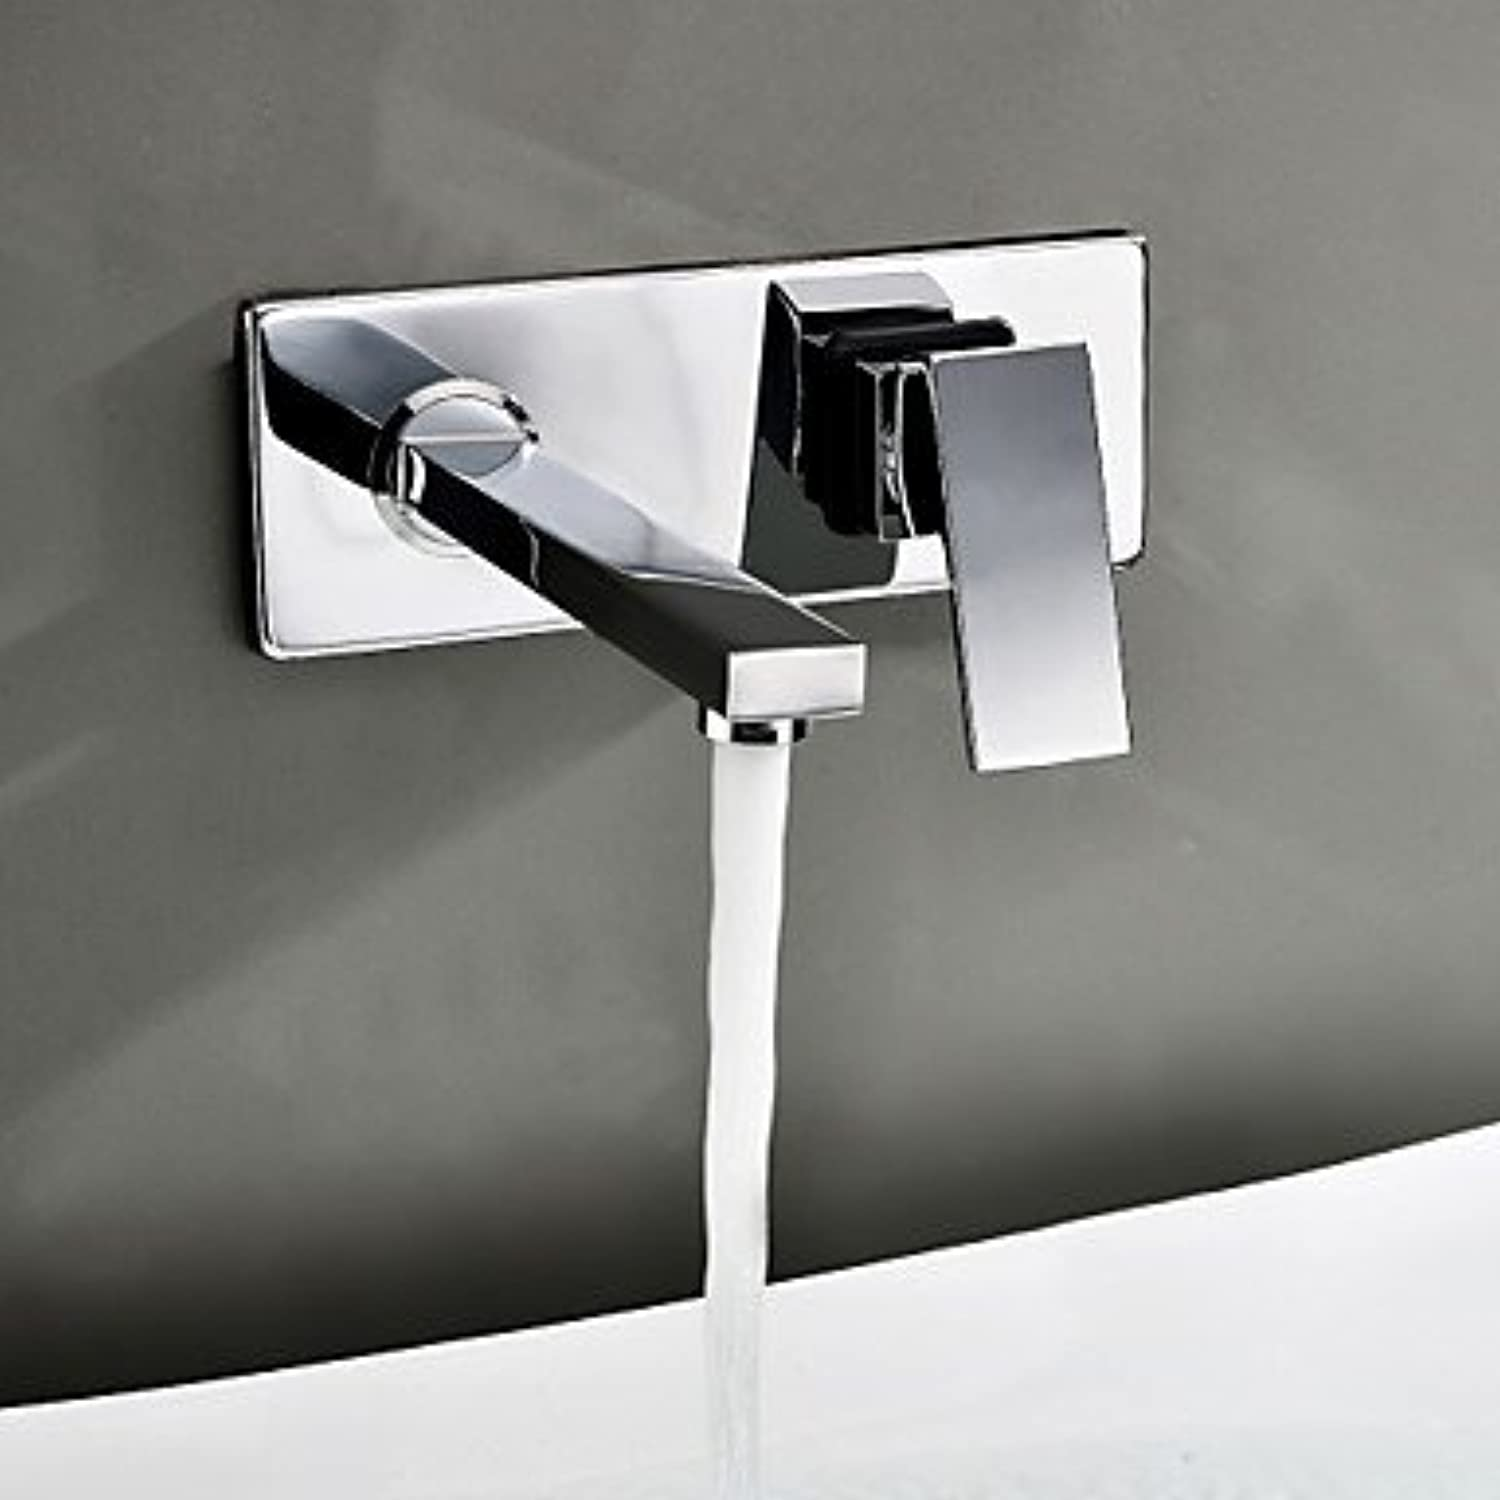 AA Faucet£? Contemporary modern wall-mounted waterfall valves with copper two hole Chrome bathroom sink faucet